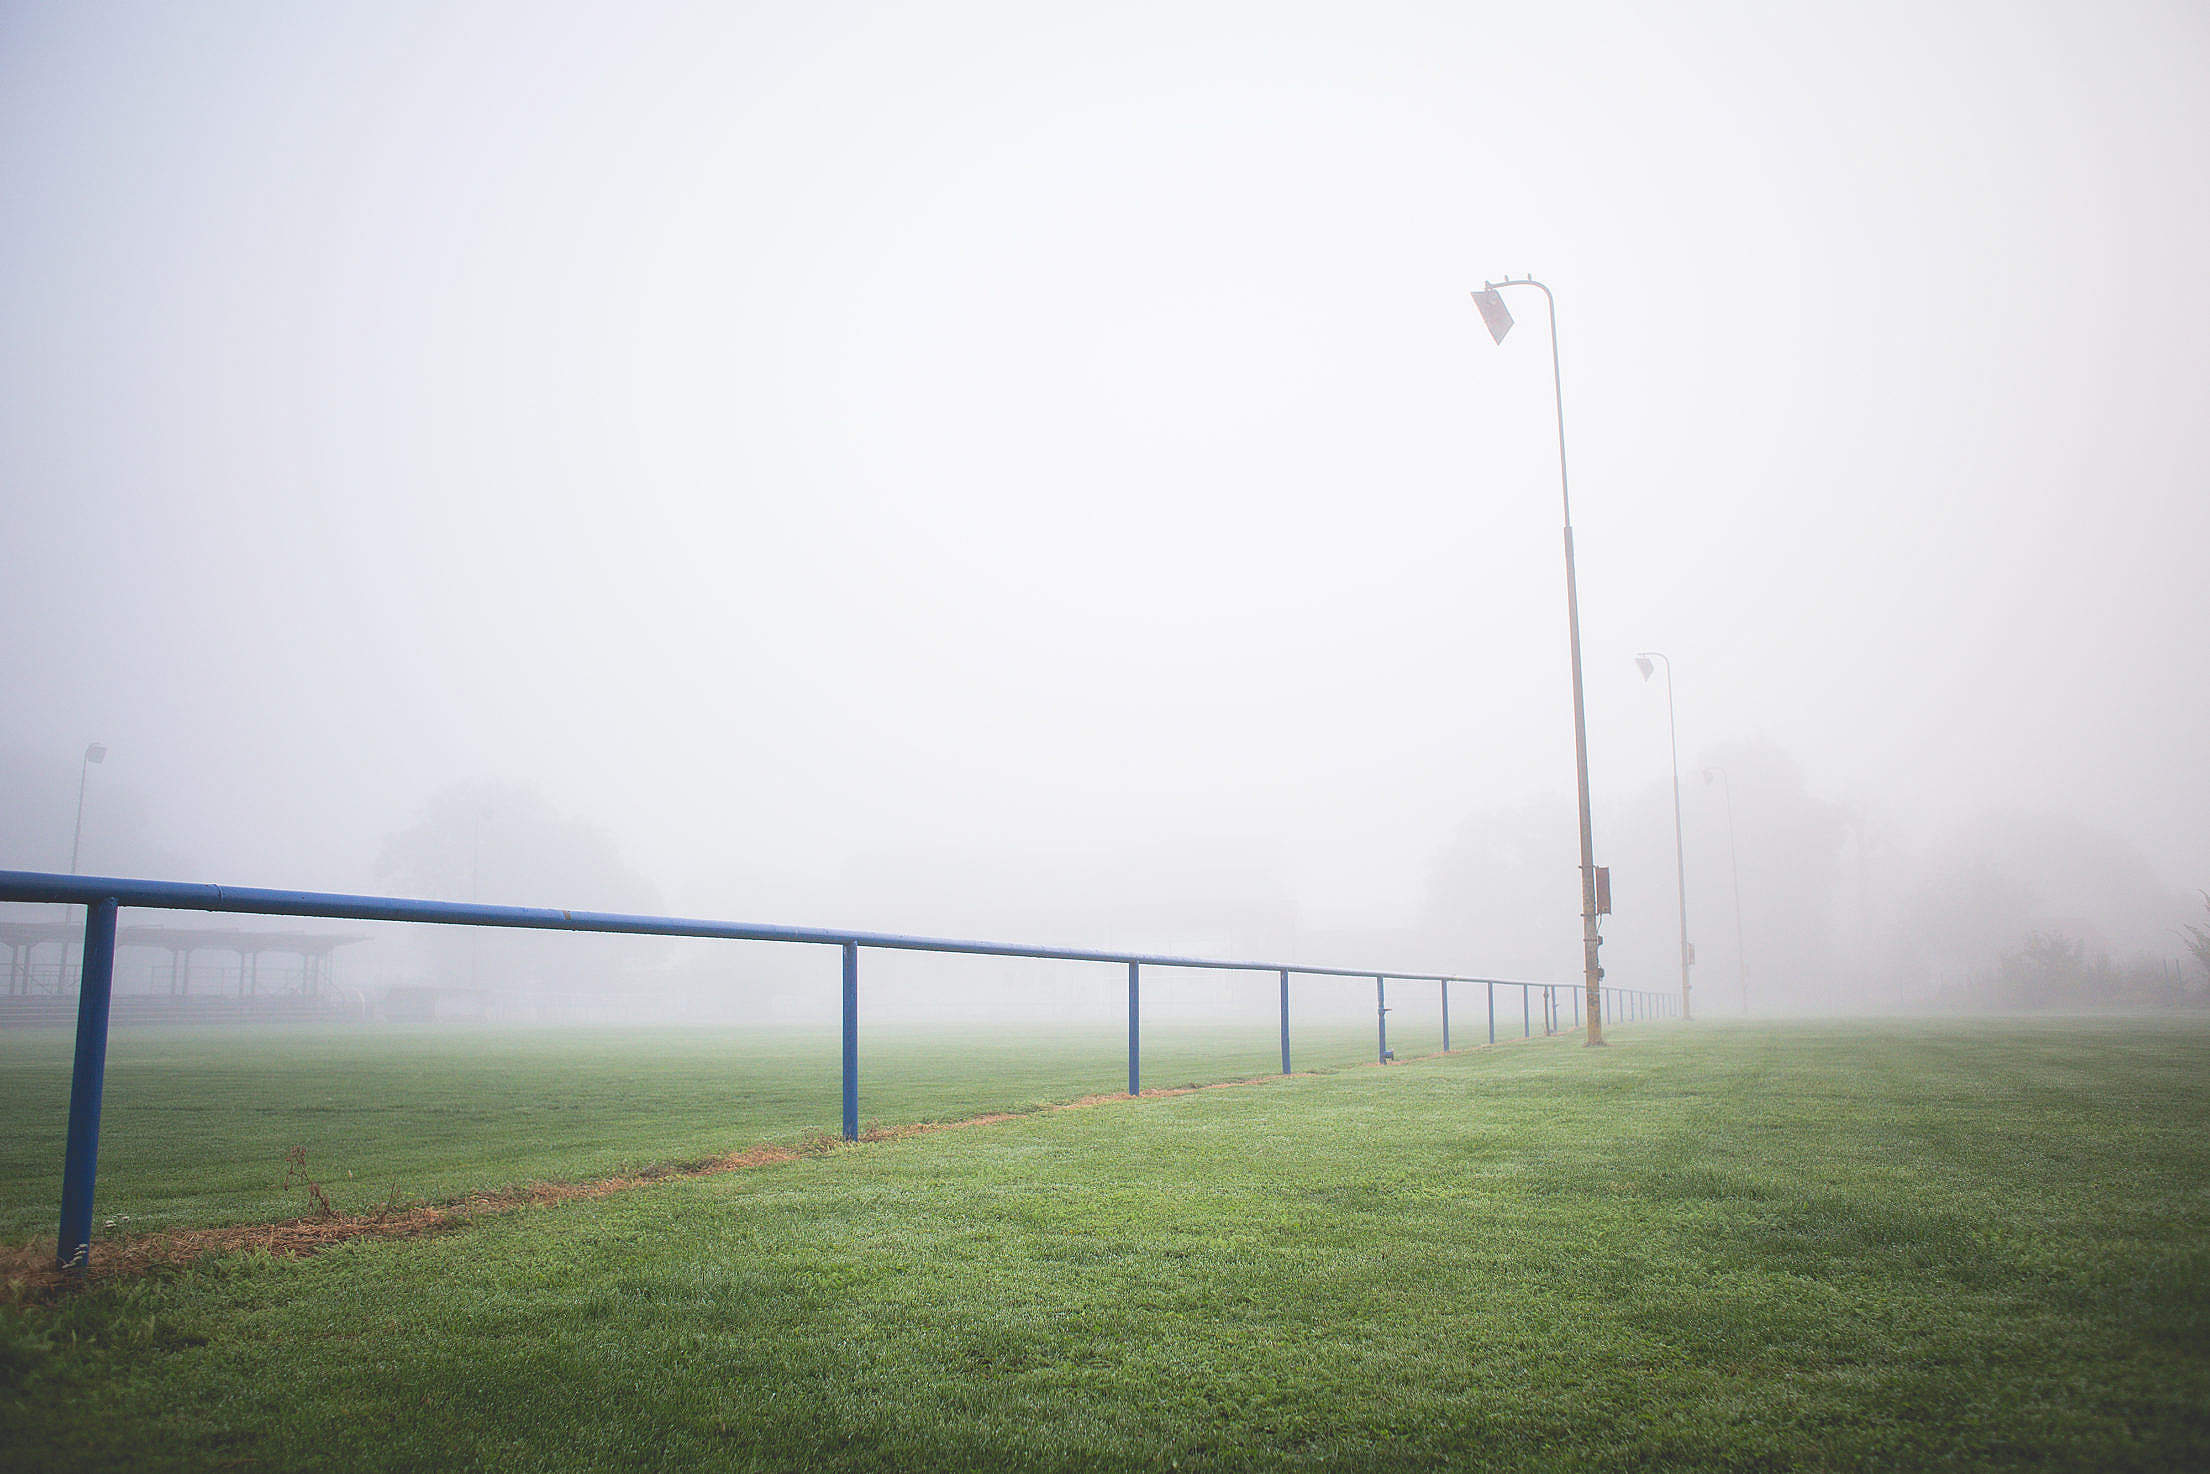 Foggy Football Pitch in the Morning Free Stock Photo